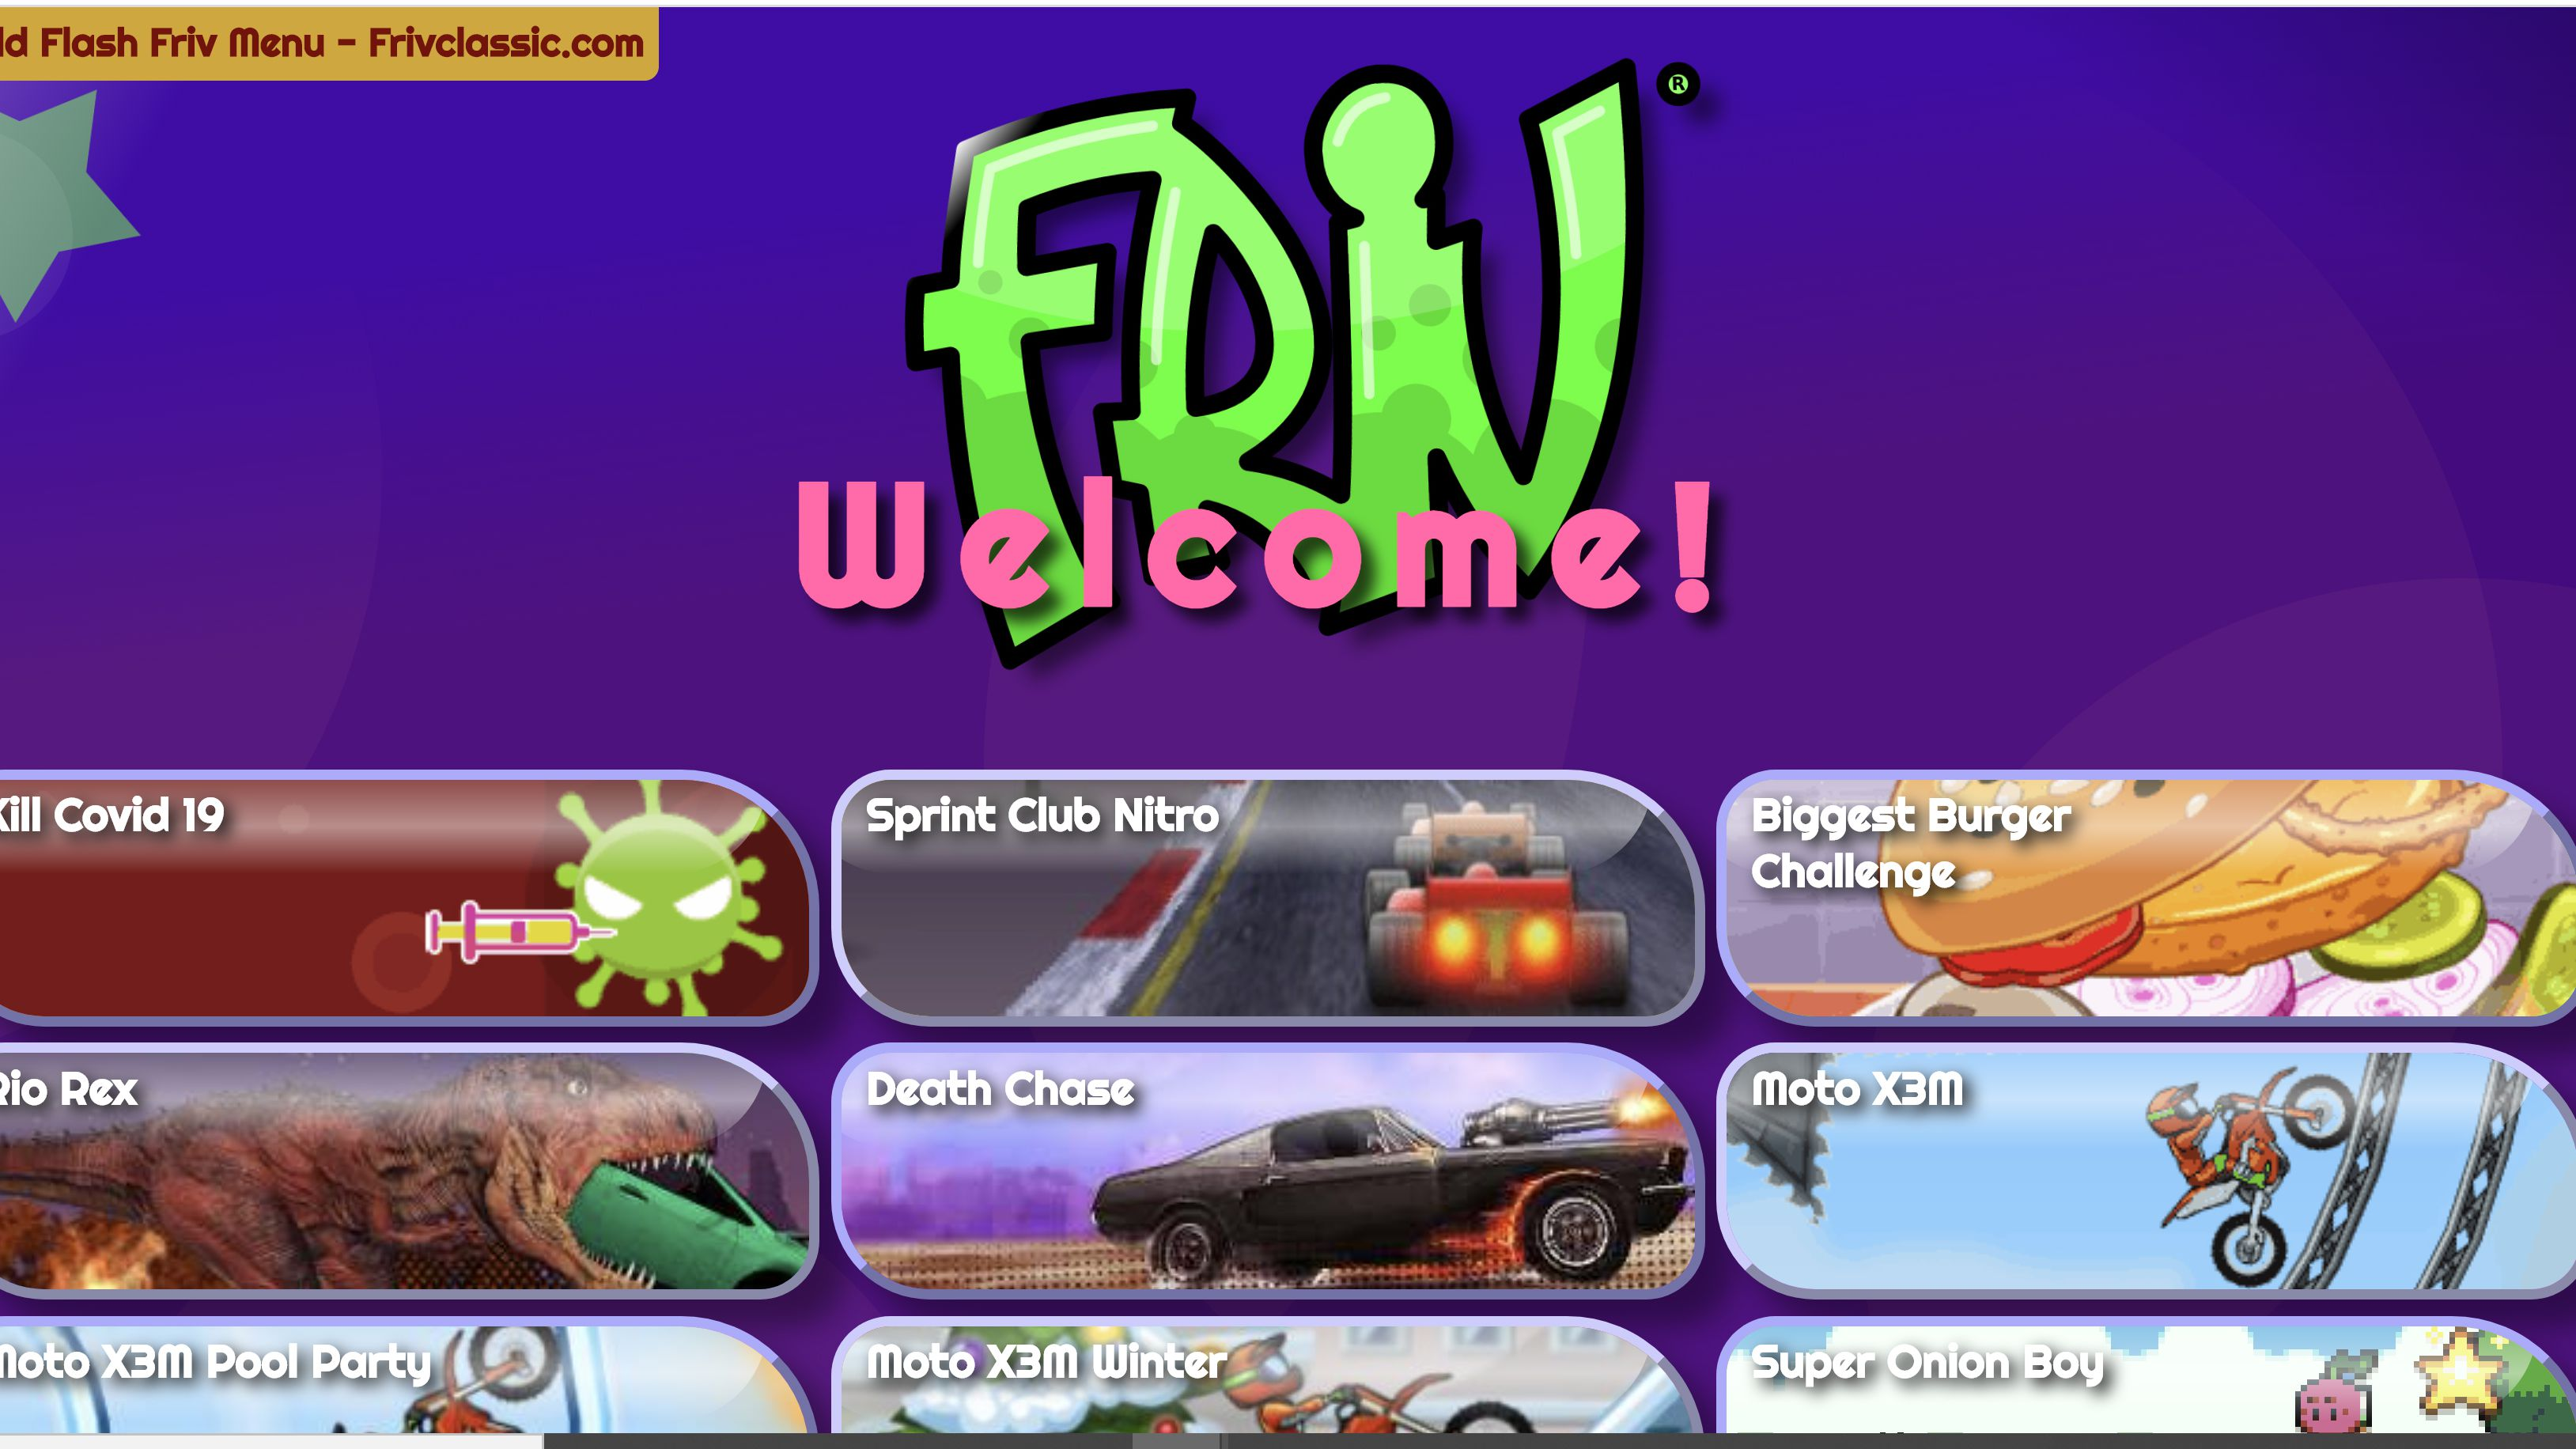 Guide To The Free Friv Games Network